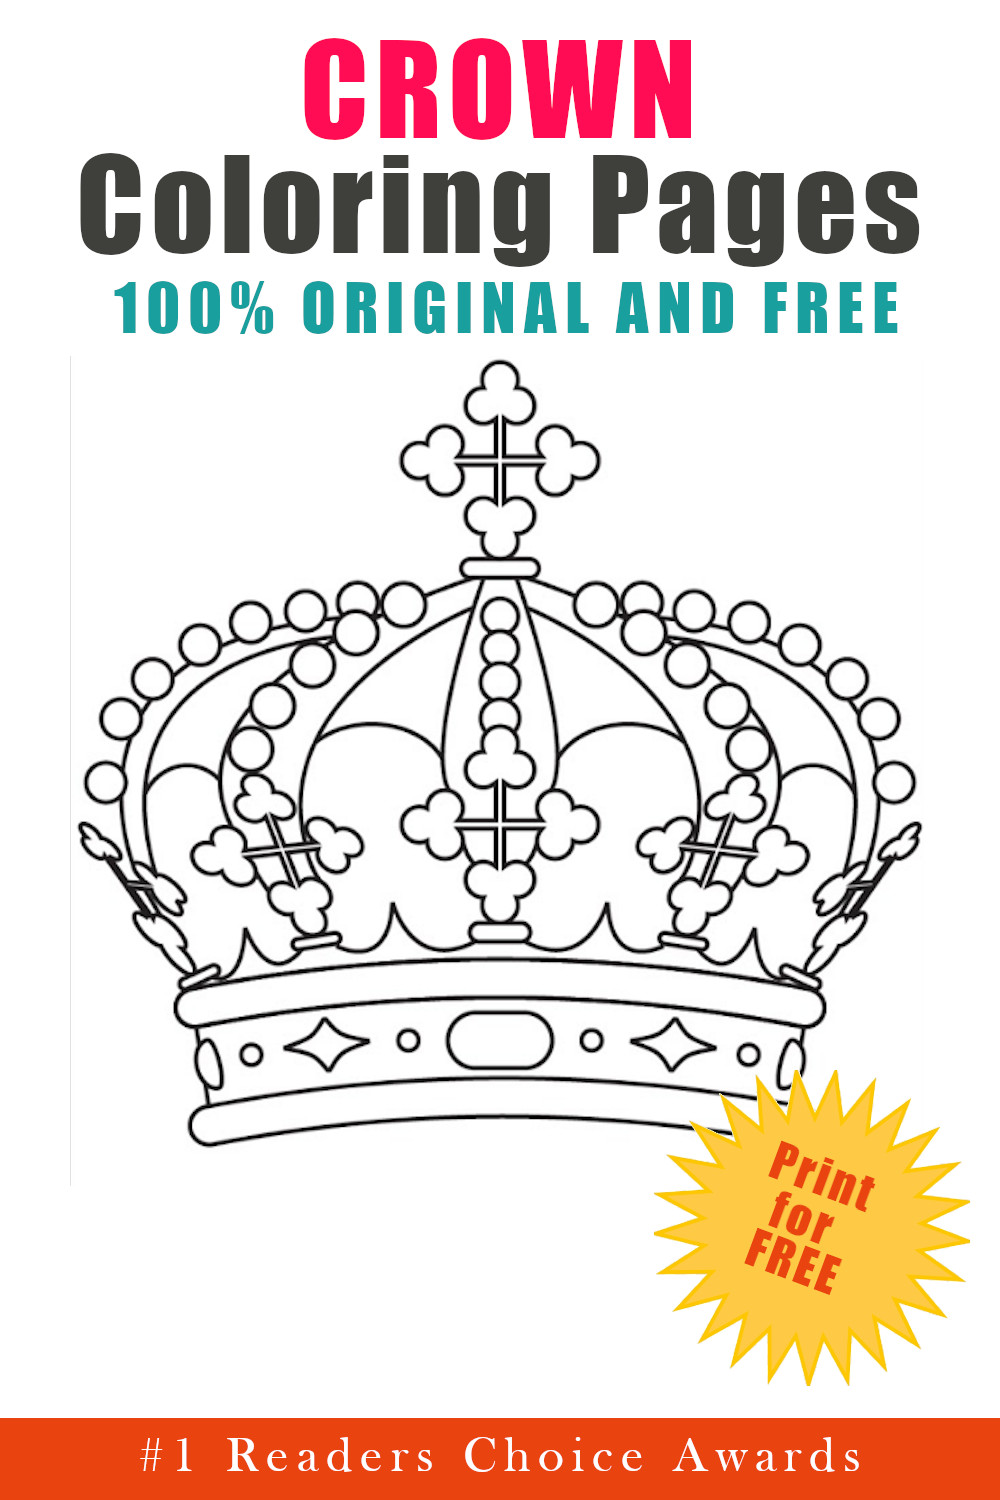 original and free crown coloring pages download